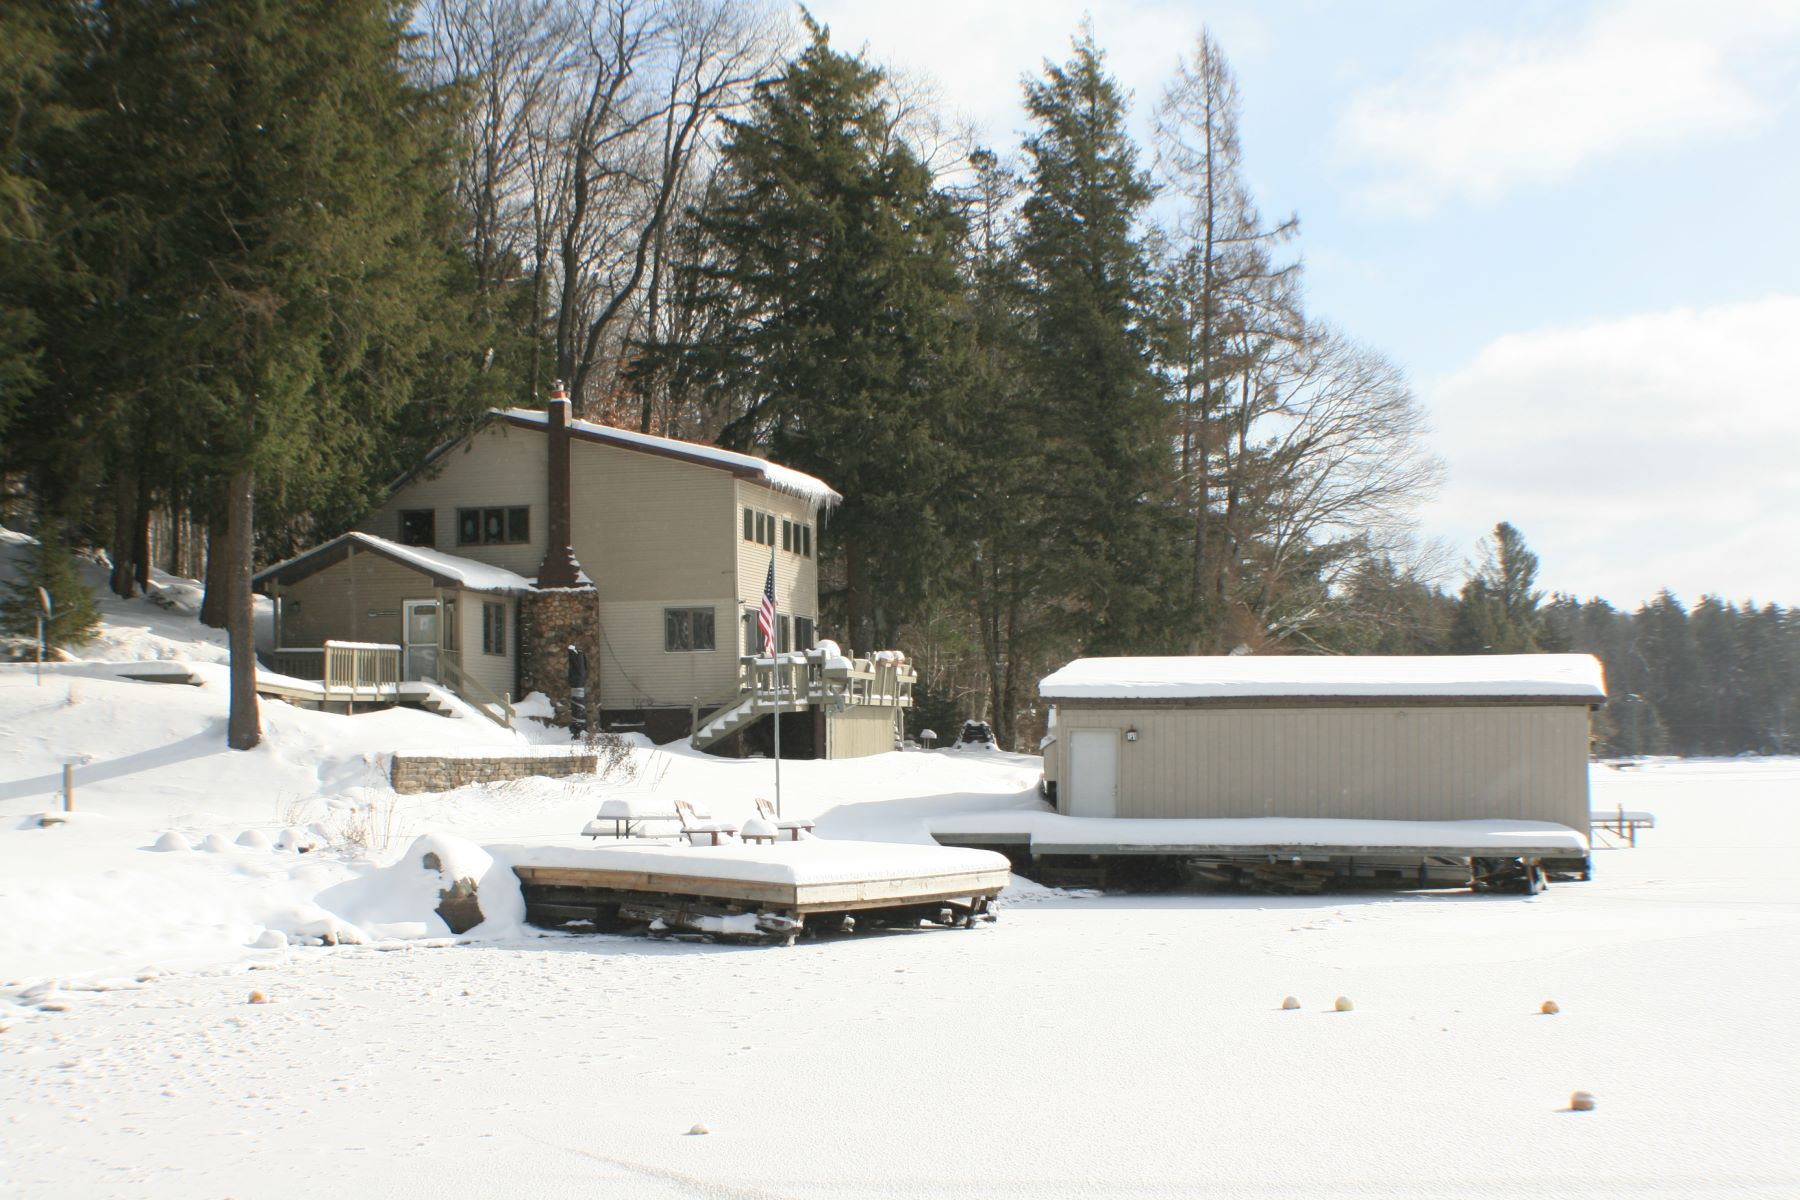 Casa multifamiliare per Affitto alle ore Lakefront Living for the Family 251 246 Petrie Road Old Forge, New York 13420 Stati Uniti